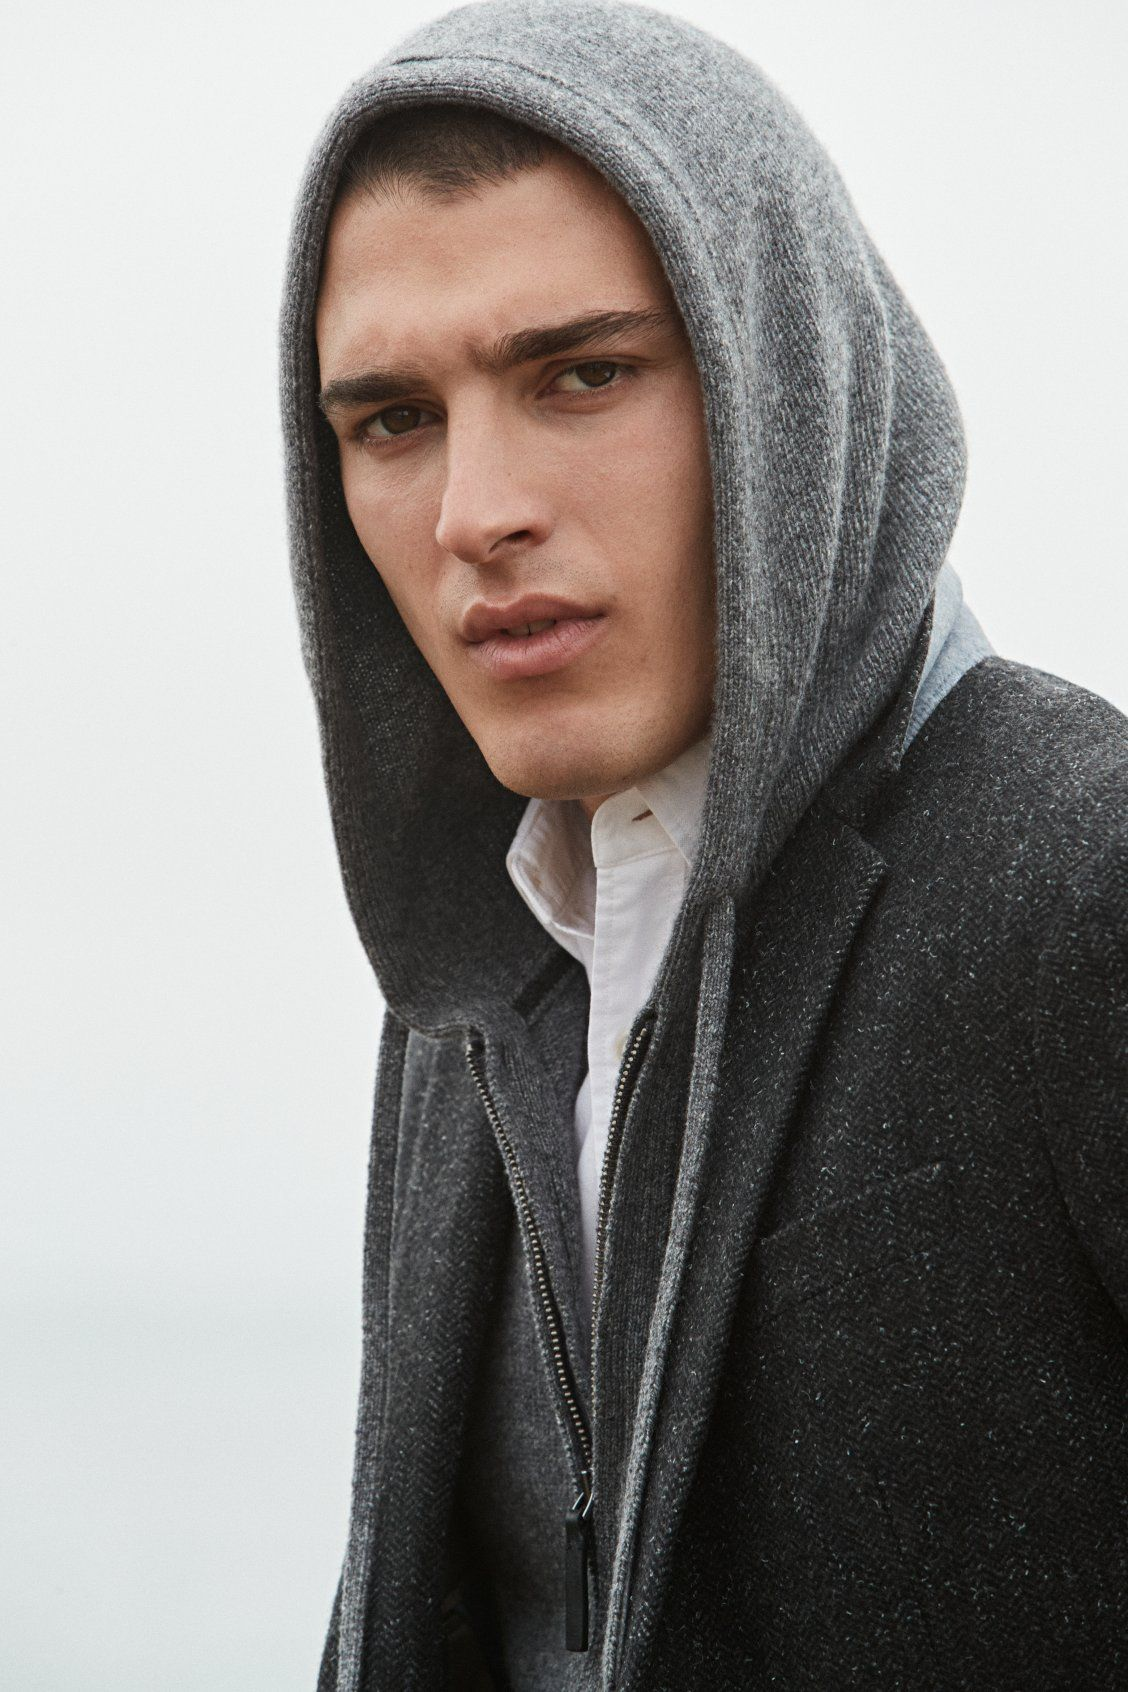 Sweater Days Ahead Pieces That Look As Good As They Feel Wearable For Every Occasion Mens Sweatshirts Hoodie Hoodies Men Sweatshirts Hoodie [ 1692 x 1128 Pixel ]